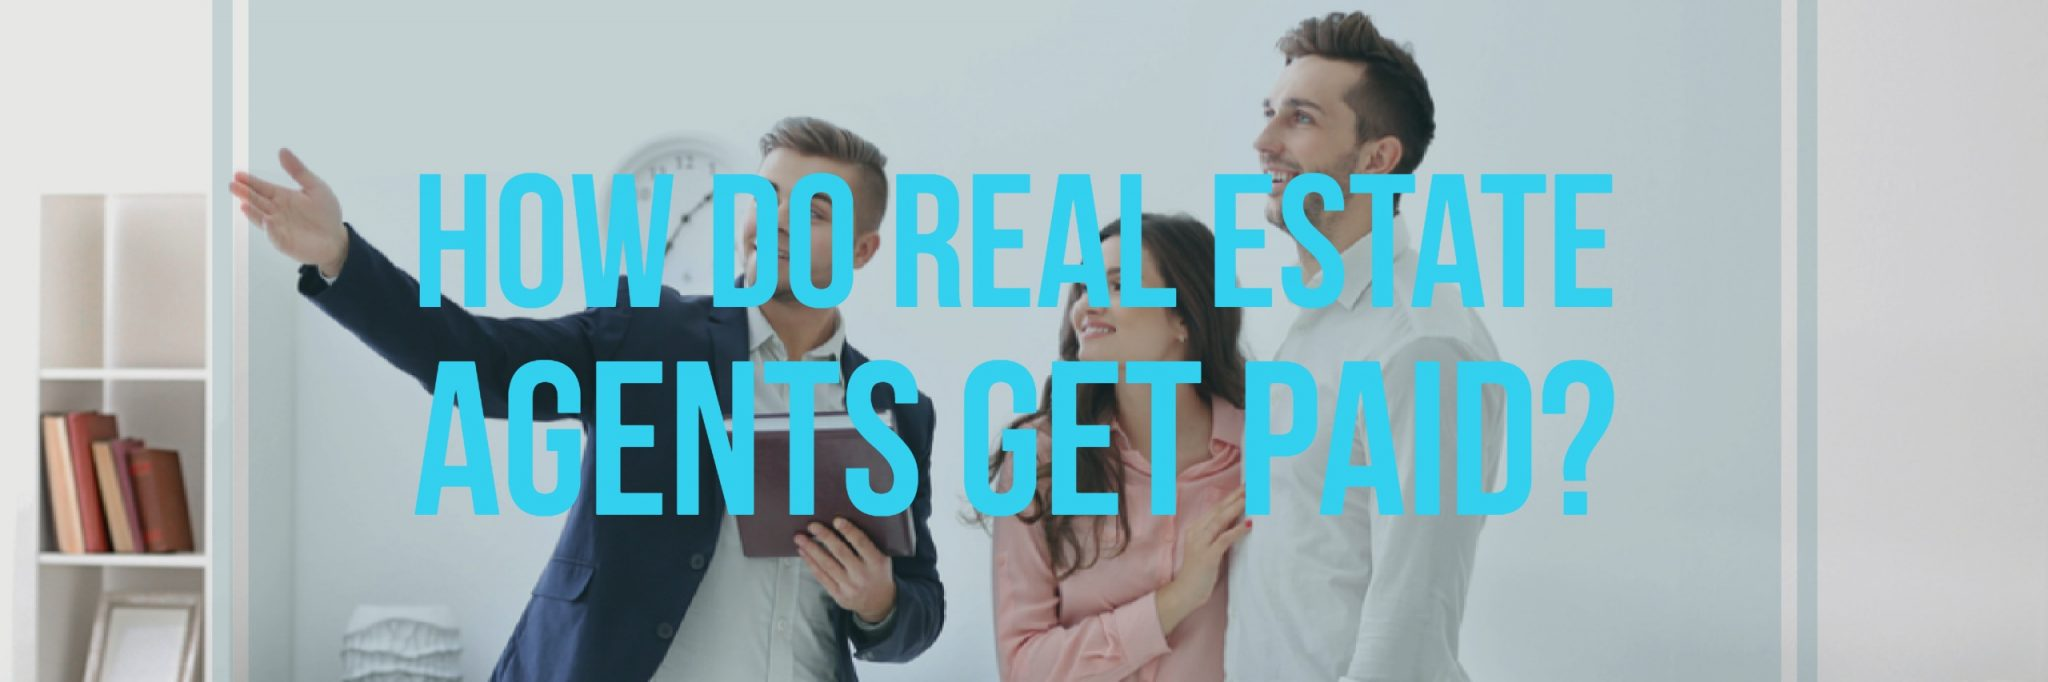 Best real estate company to work for best training for new real estate agents real estate agent coaching real estate agent training best real estate company in Los Angeles (4)